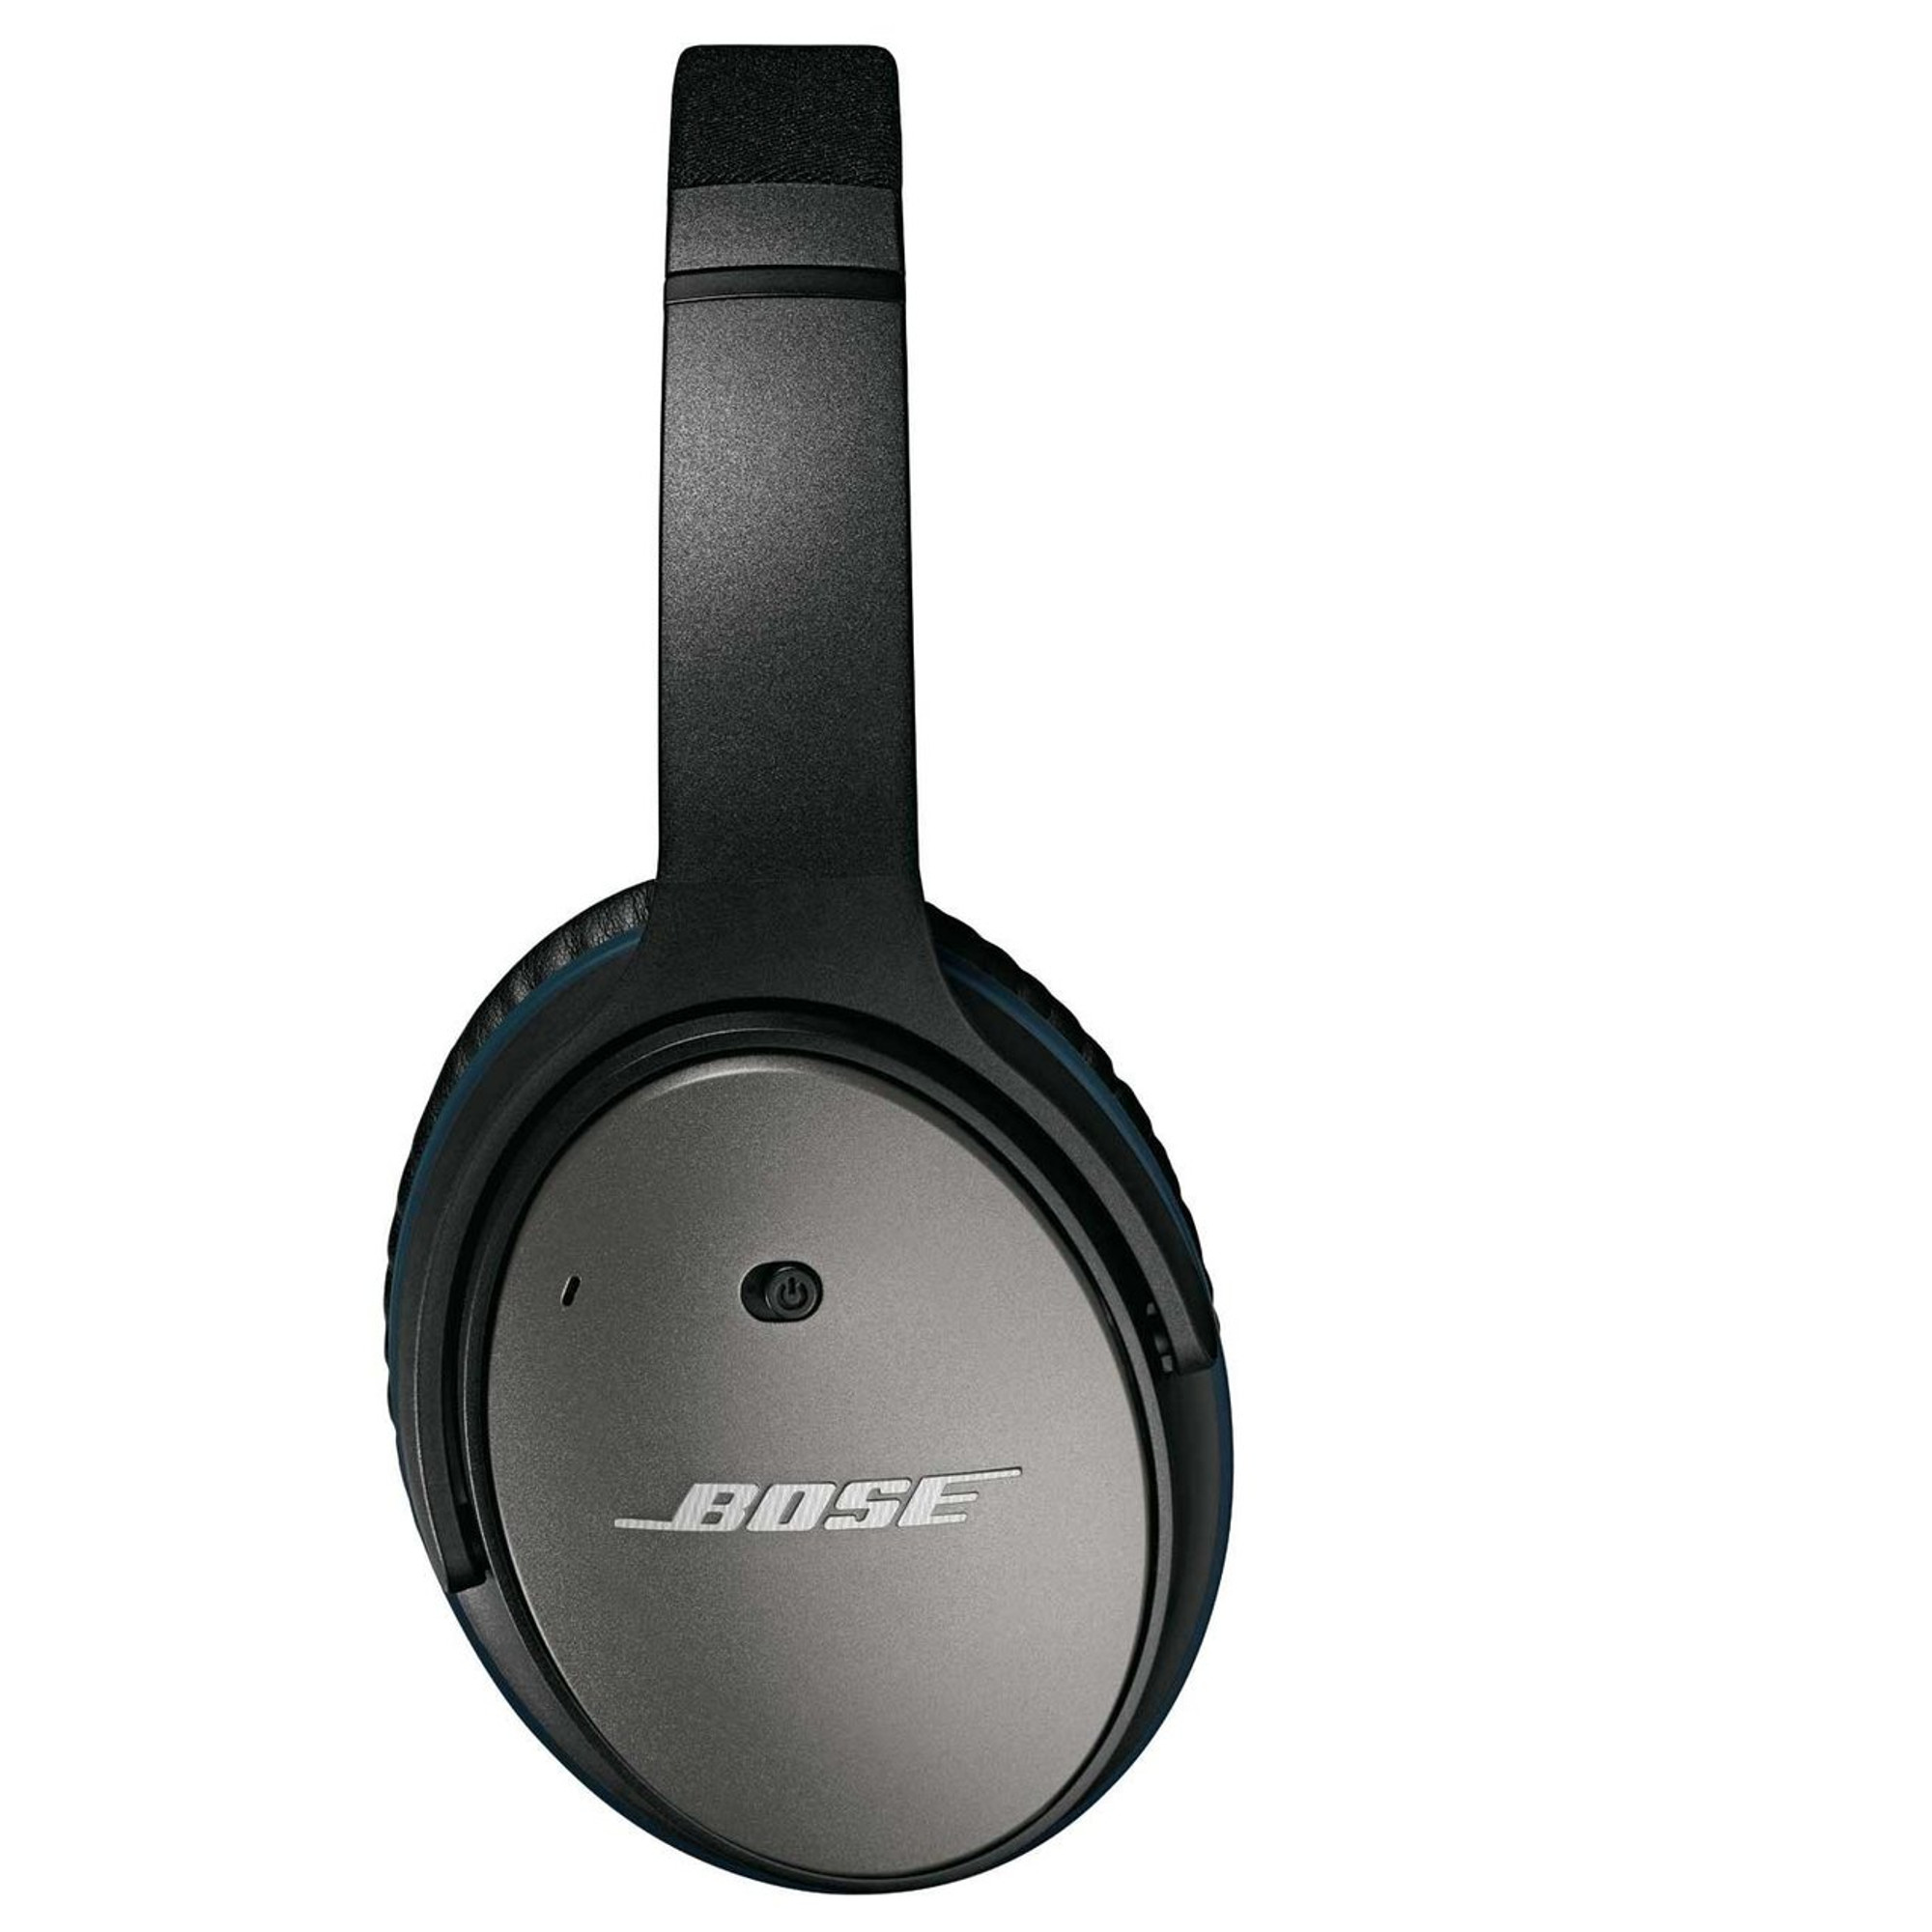 3b9786e820e Bose QuietComfort 25 Noise Cancelling Headphones For Apple Devices (Black)